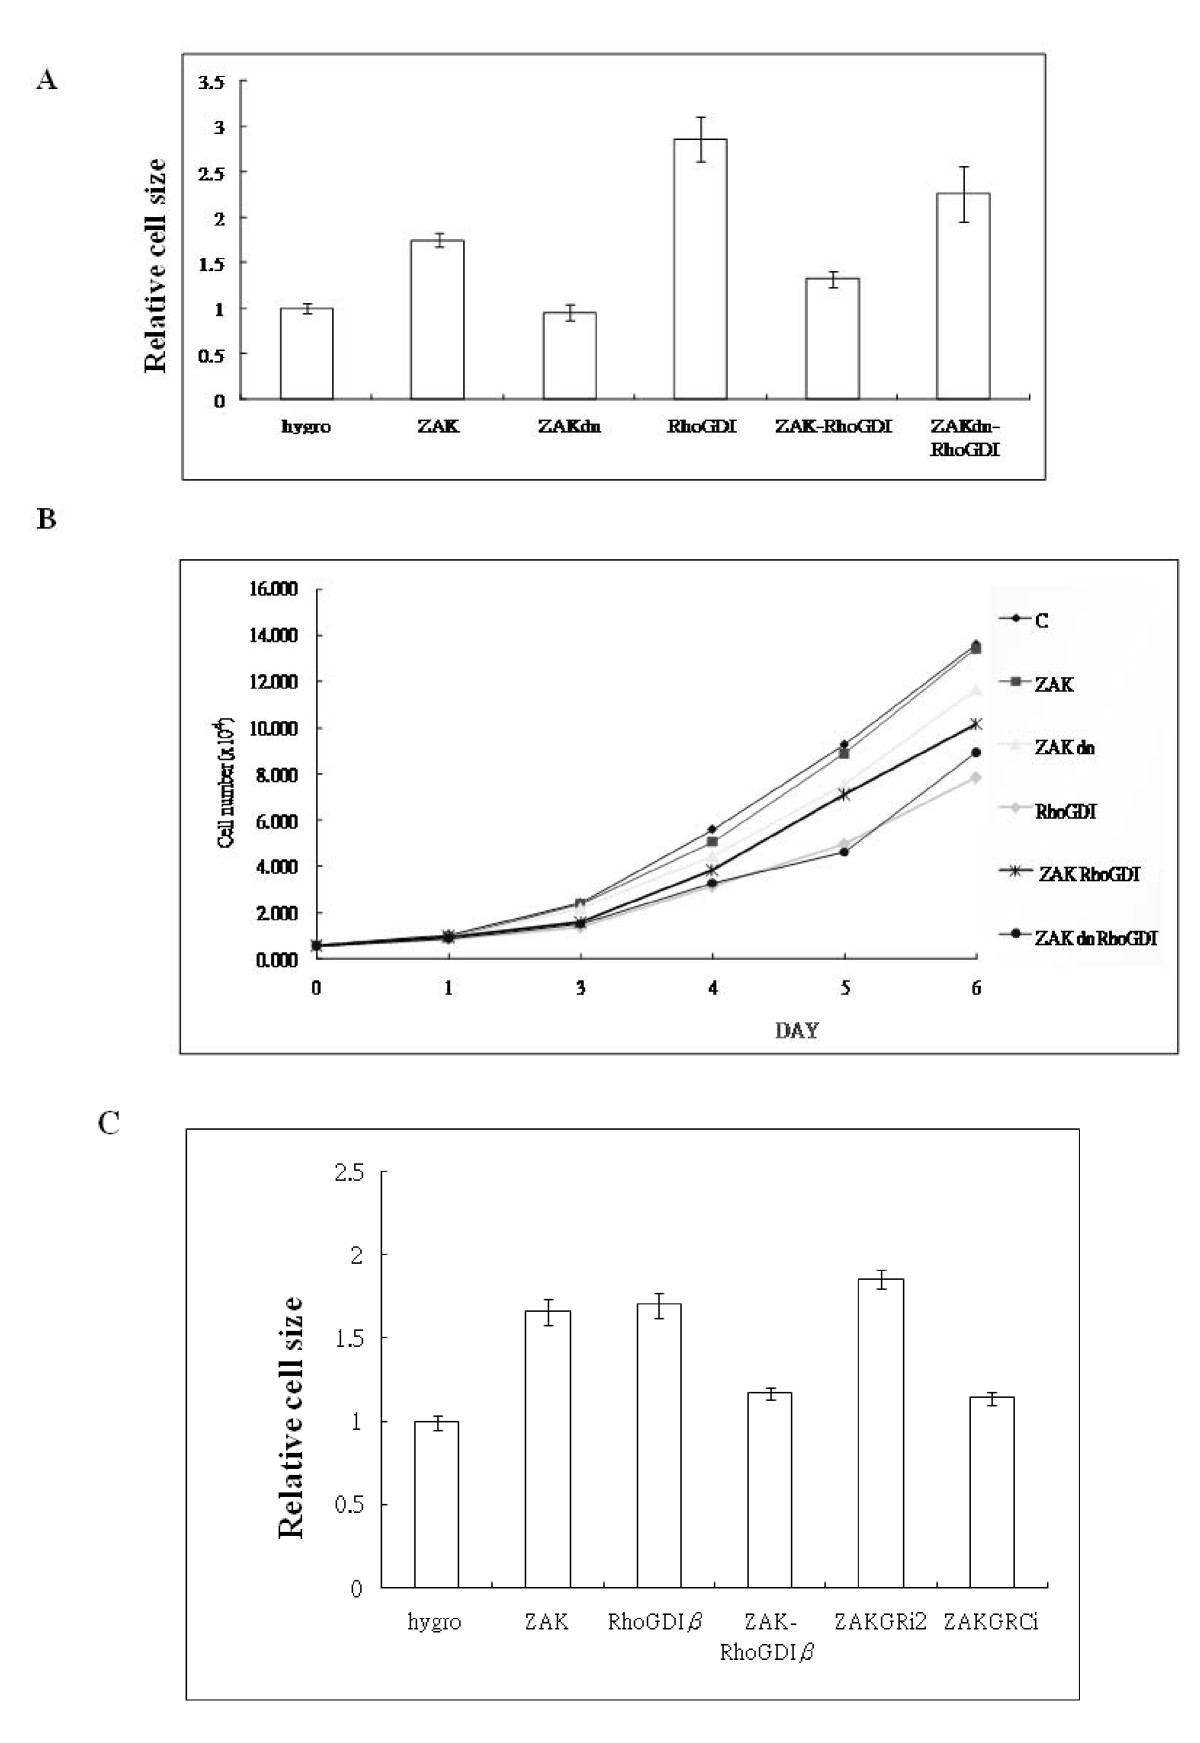 https://static-content.springer.com/image/art%3A10.1186%2F1423-0127-16-11/MediaObjects/12929_2008_Article_11_Fig4_HTML.jpg